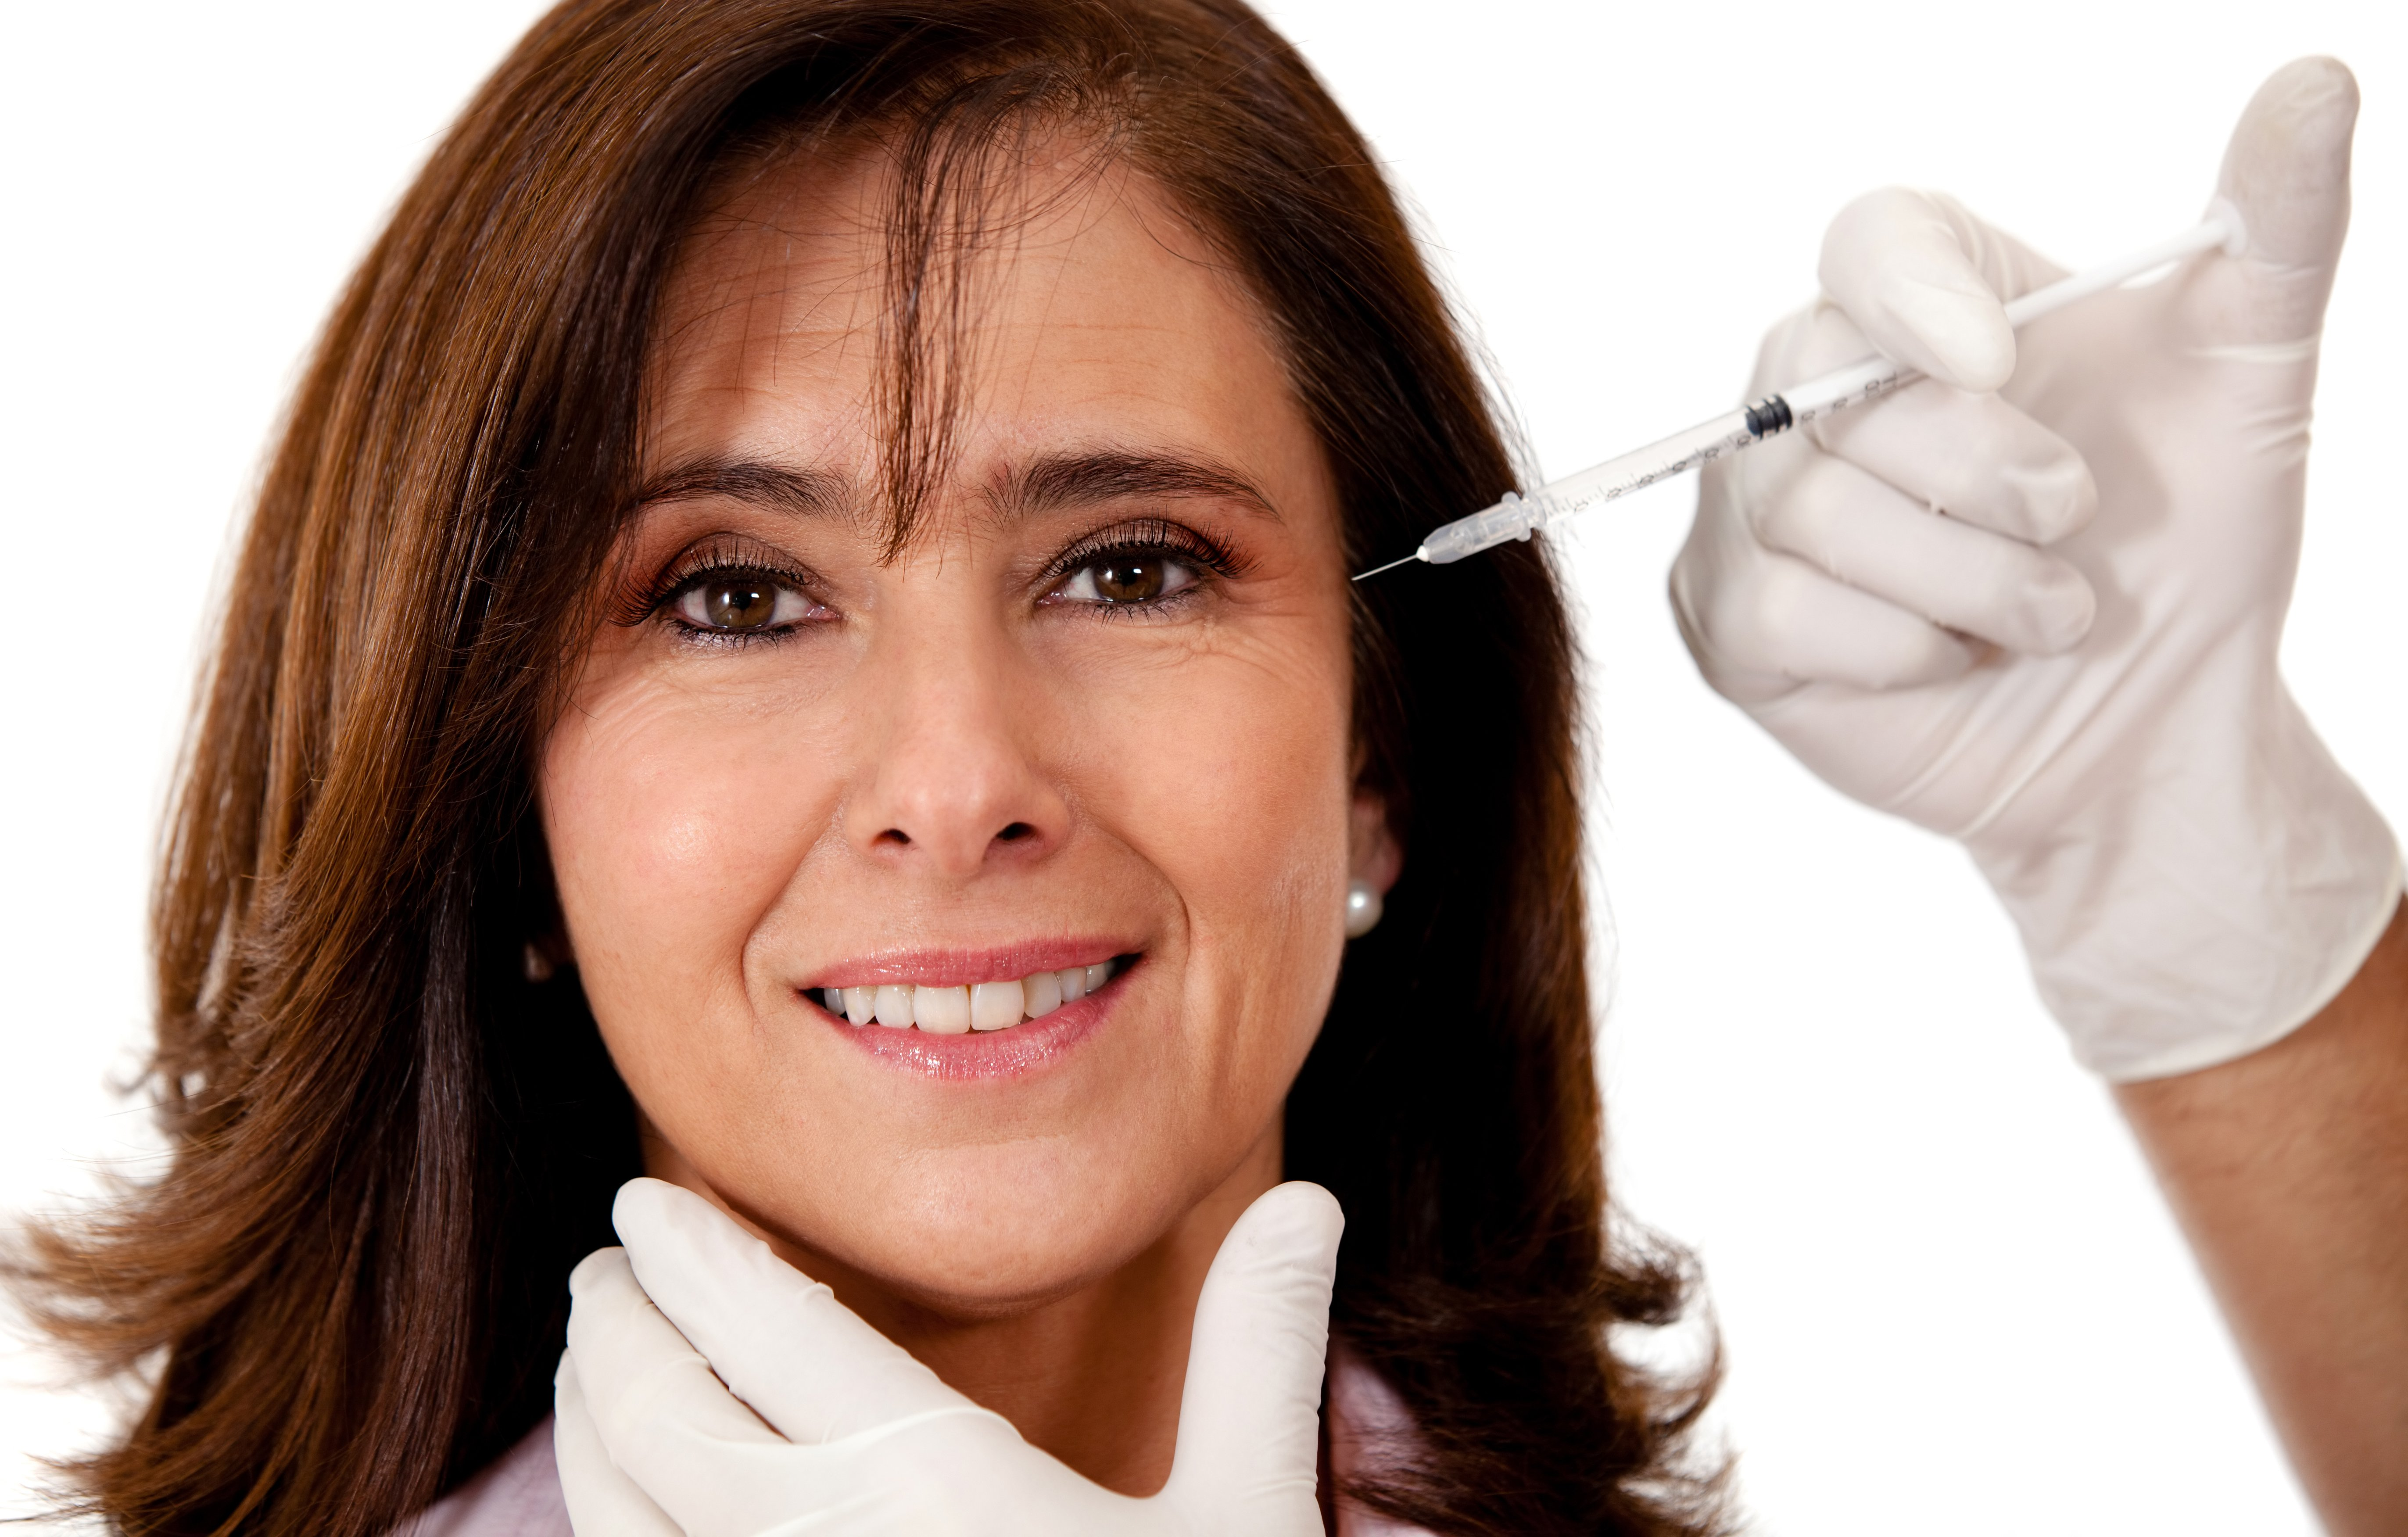 Woman getting a face lift with Botox - isolated over a white backgroun